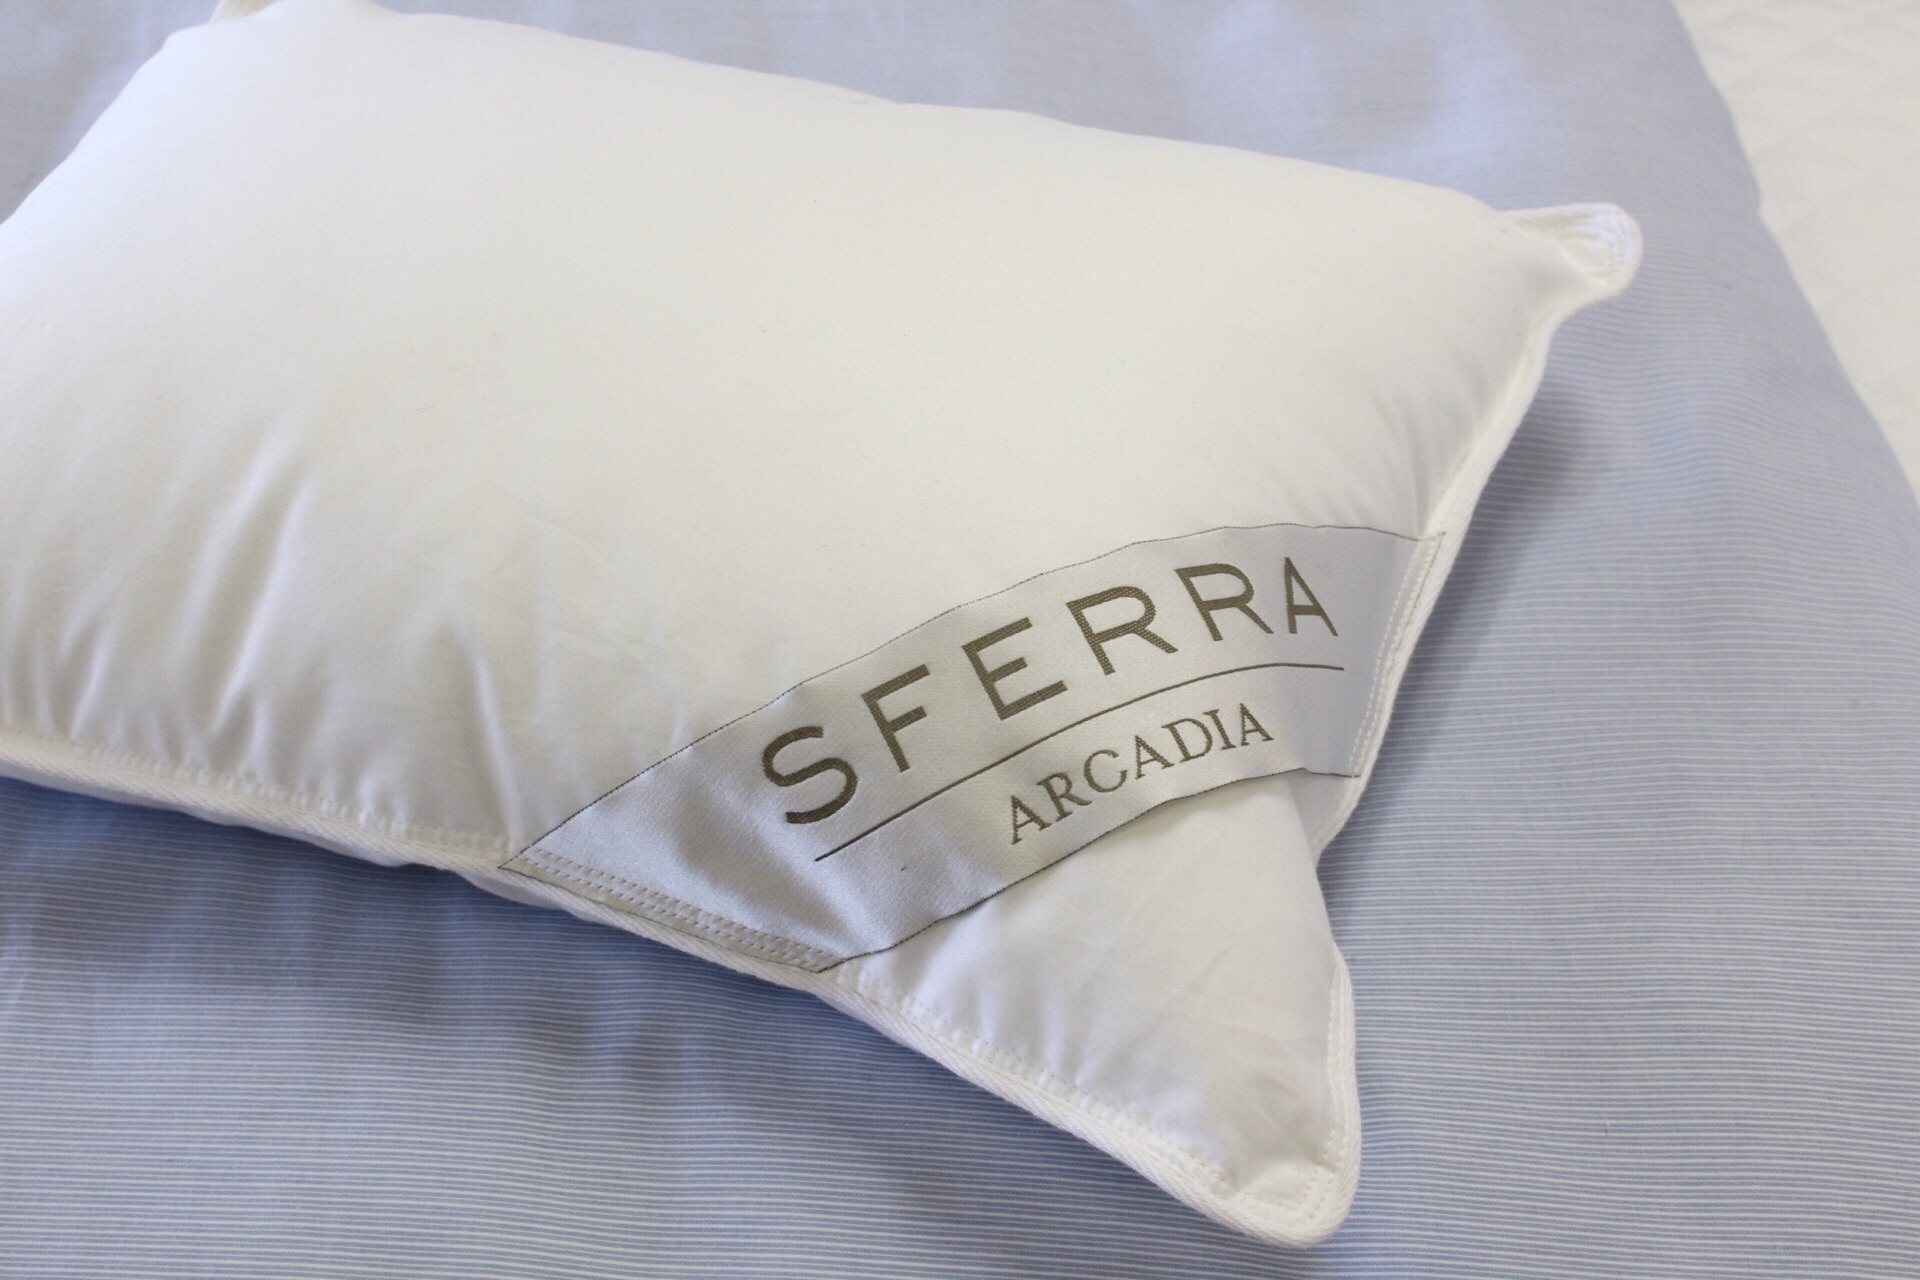 Don't forget the pillow. Sferra offers those too.